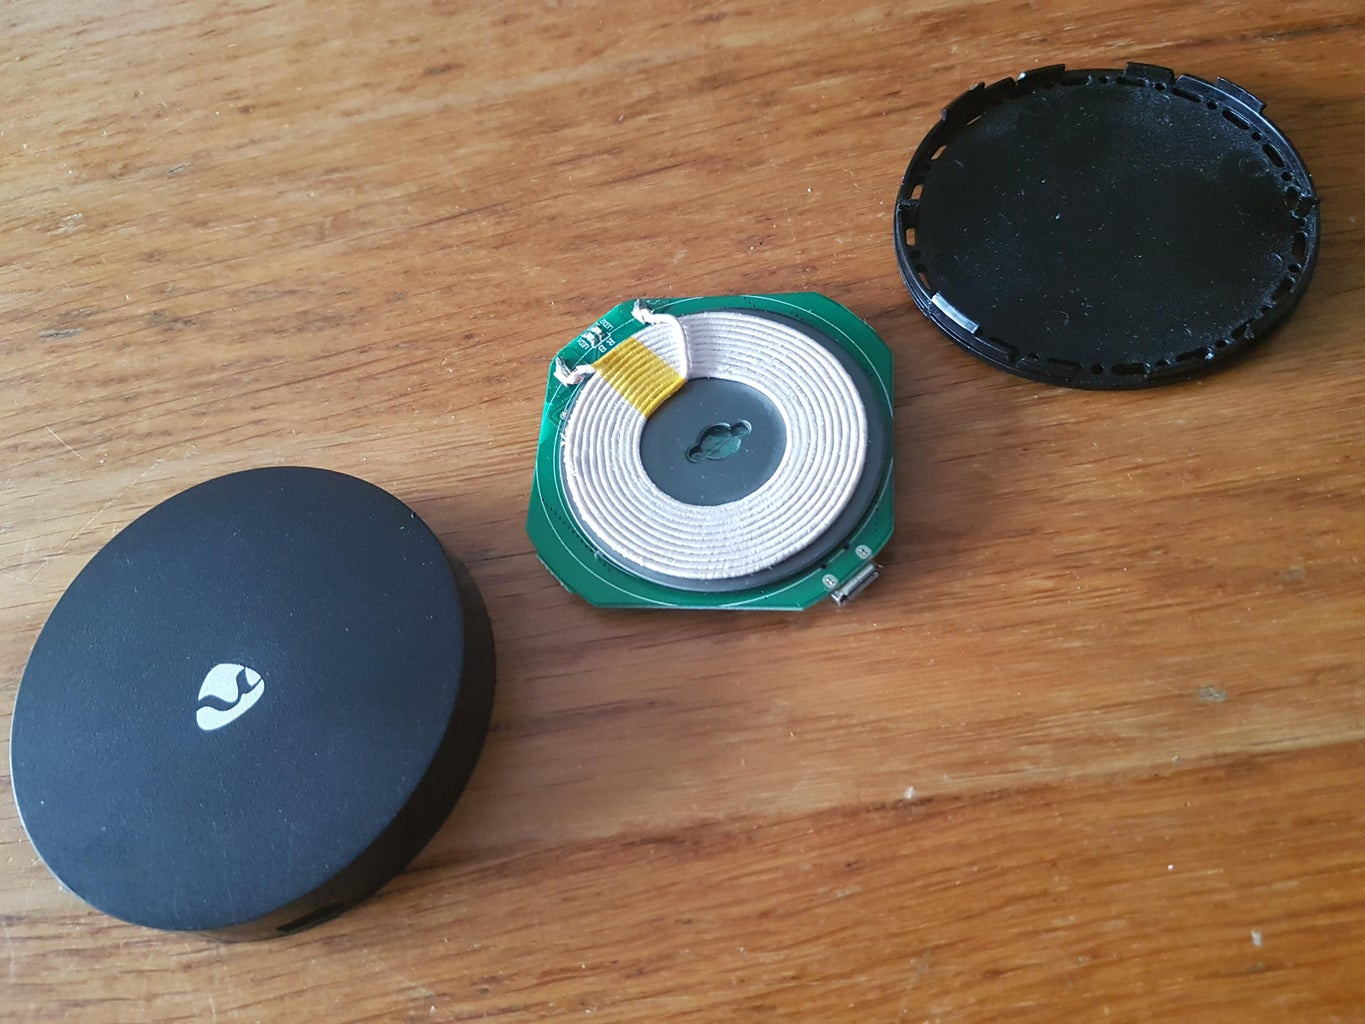 Find a Old Wireless Usb Charger